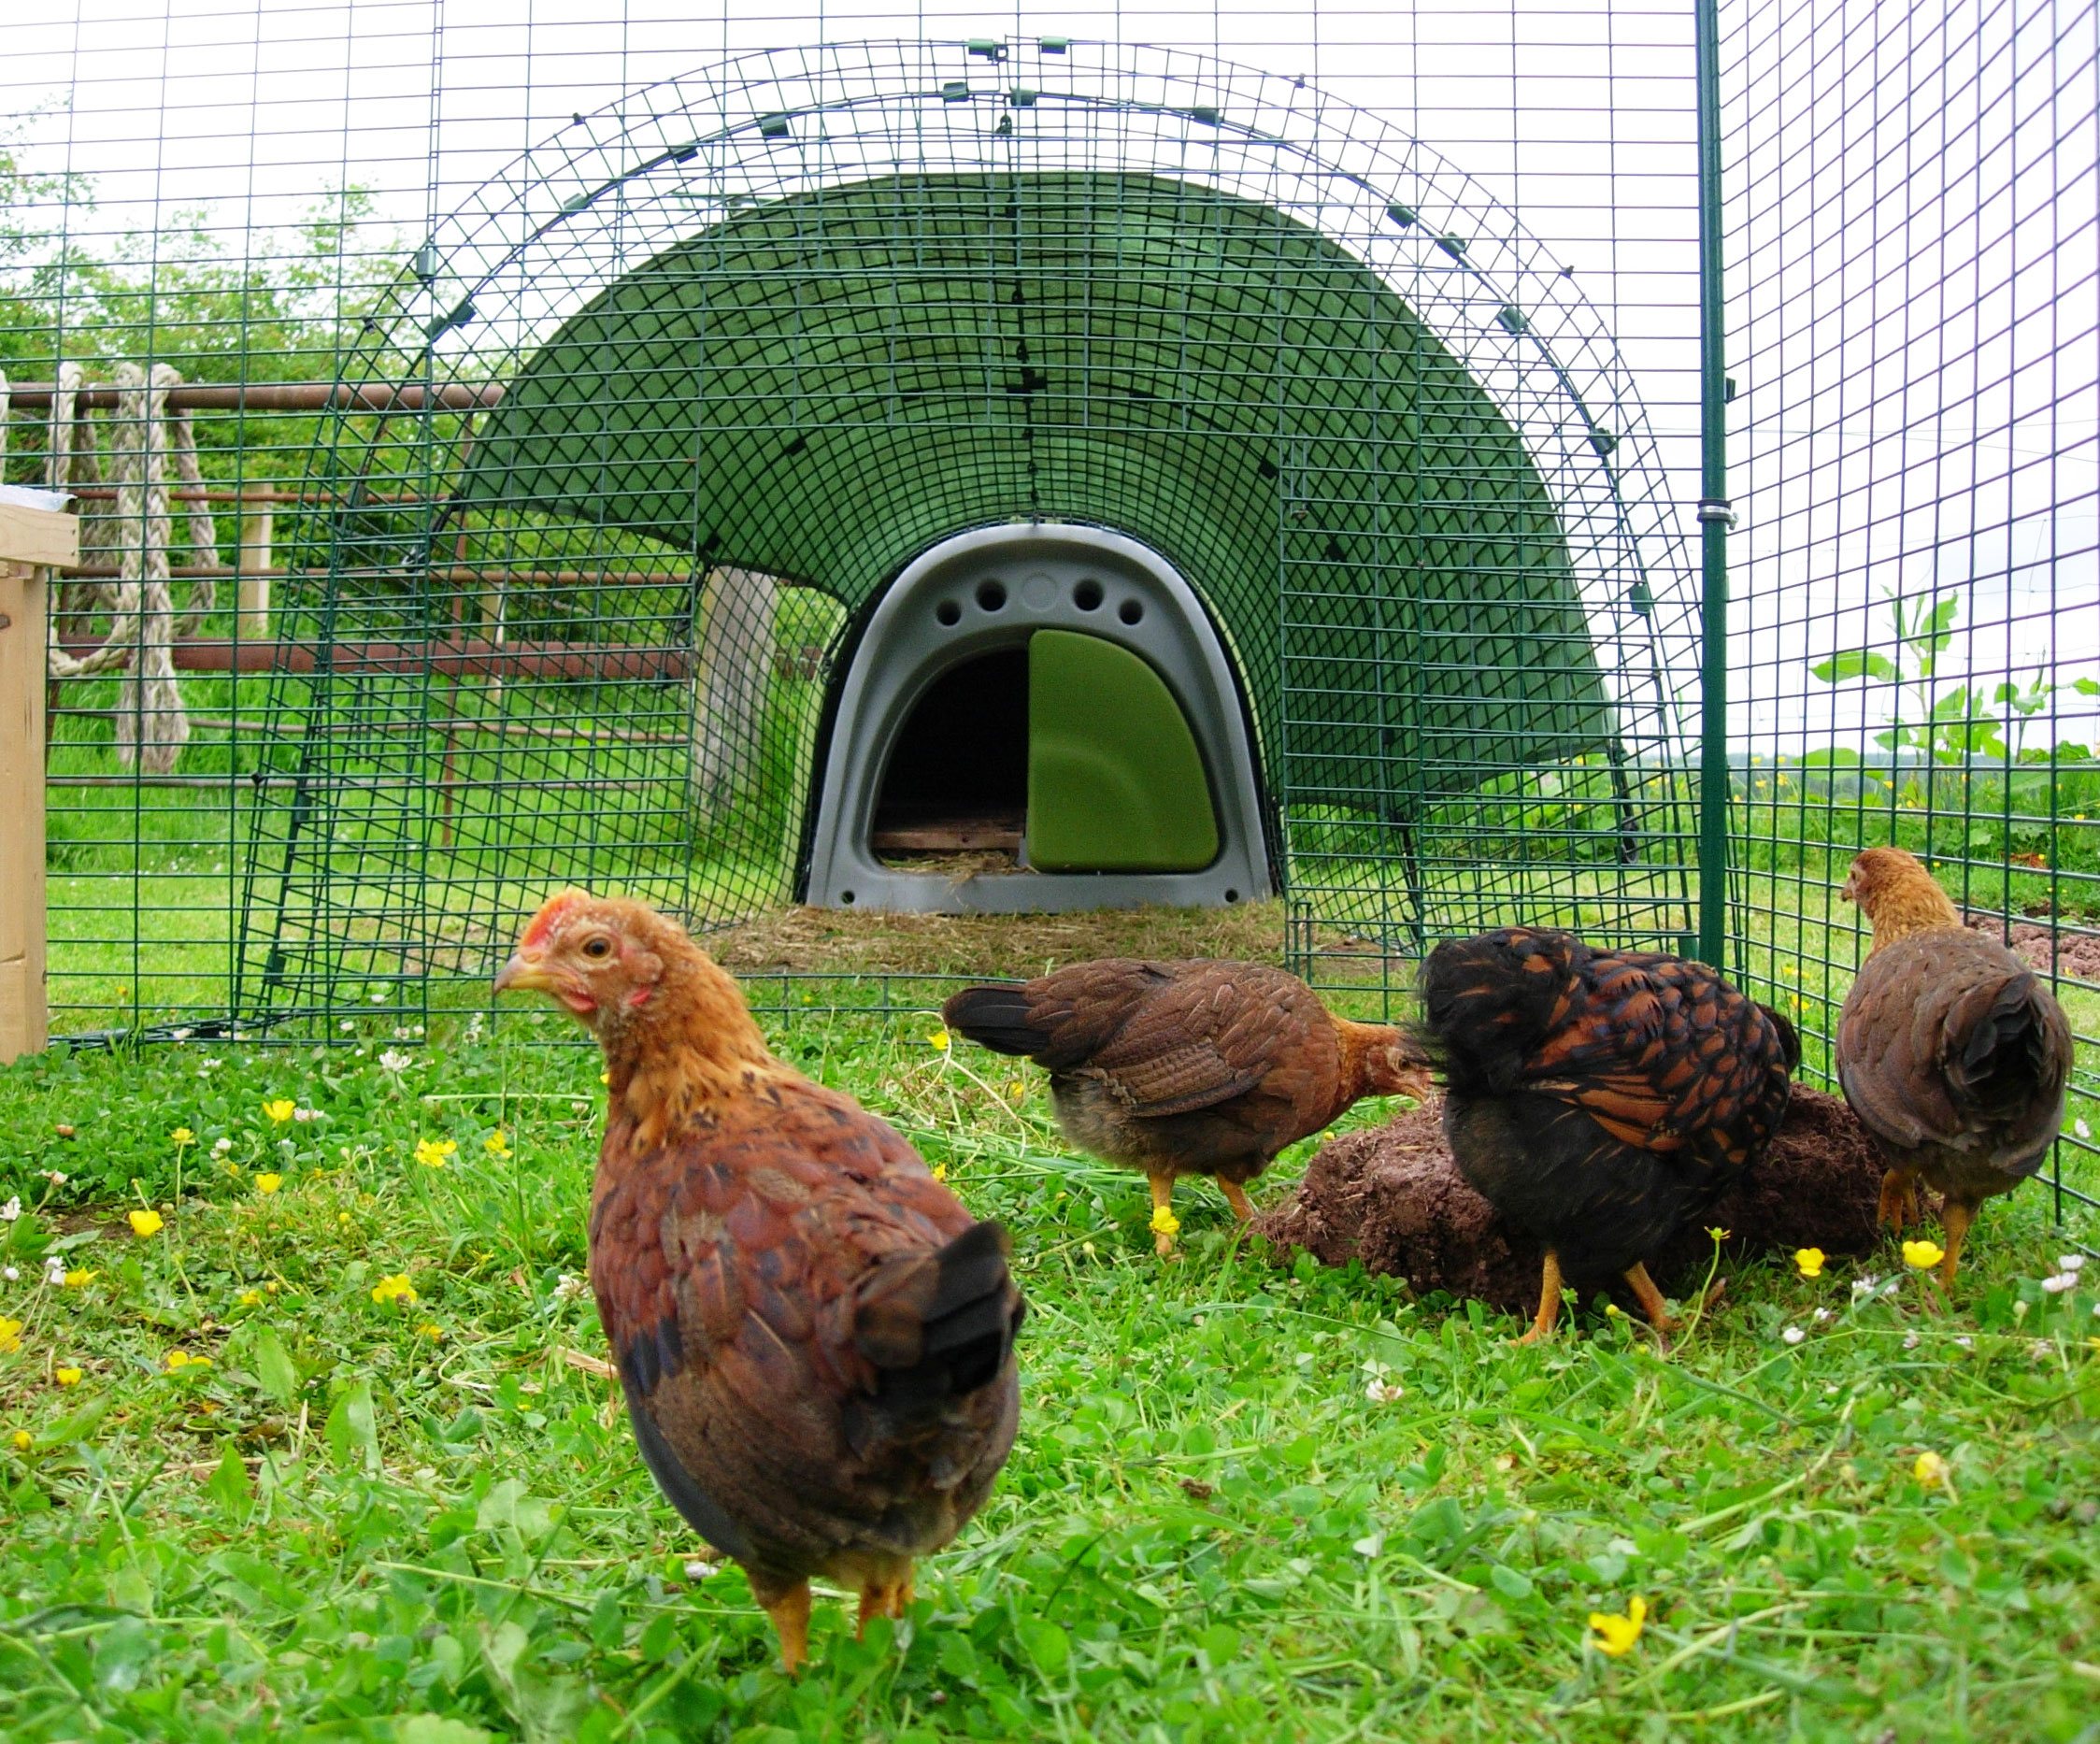 Jilly Graham's hens love being let out to explore the garden but know they need to go back in at night